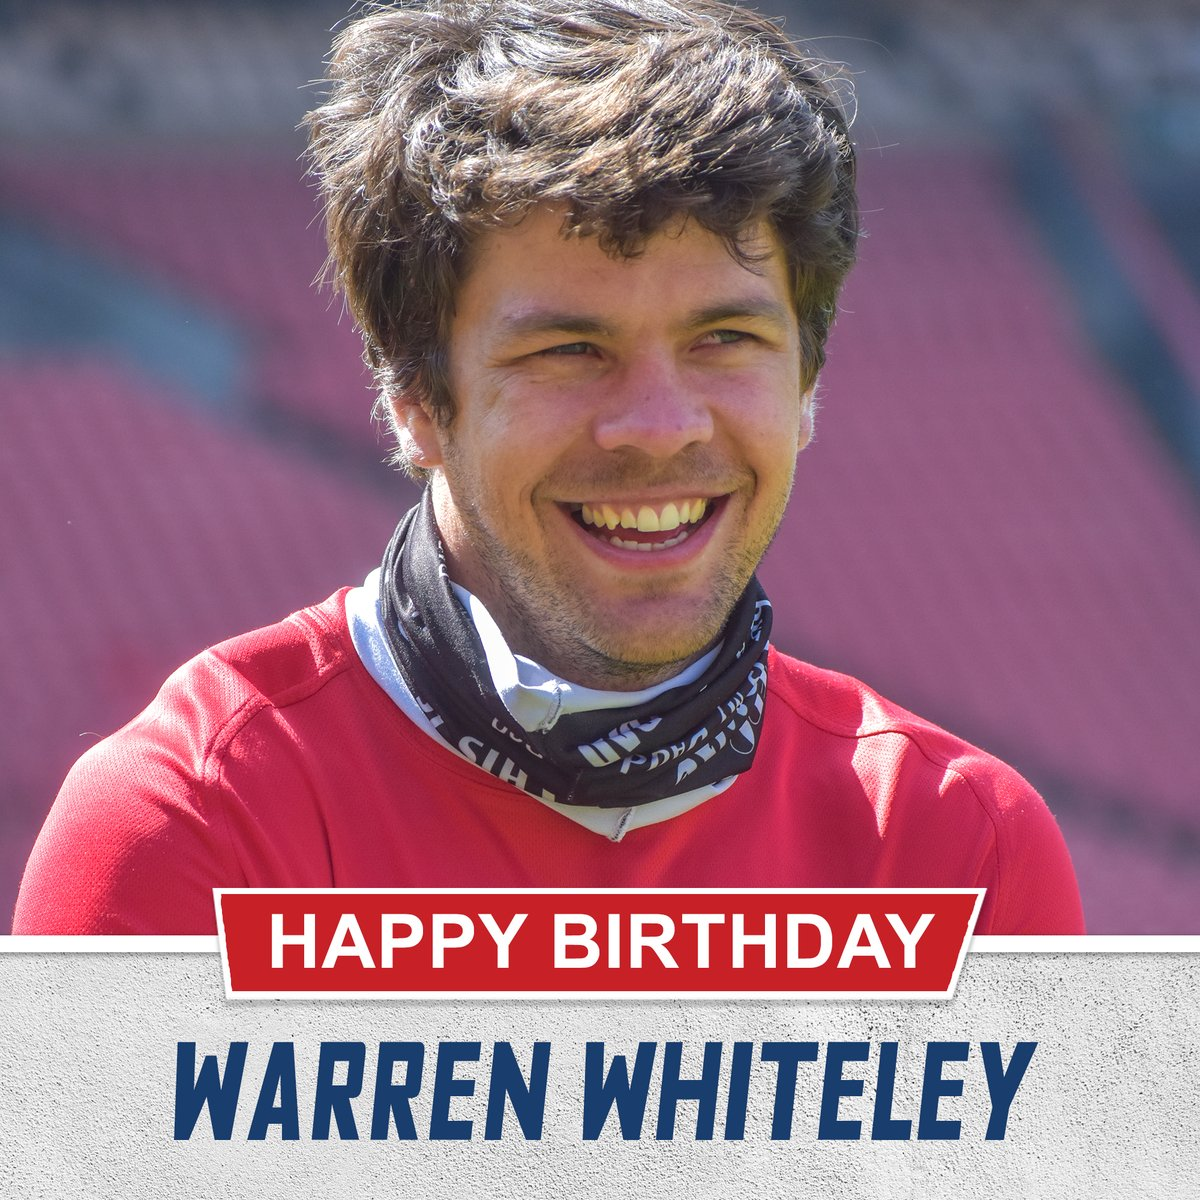 Happy birthday, Wazza! We hope you have a fantastic day!  #LionsPride https://t.co/NgqEjFV4Dq